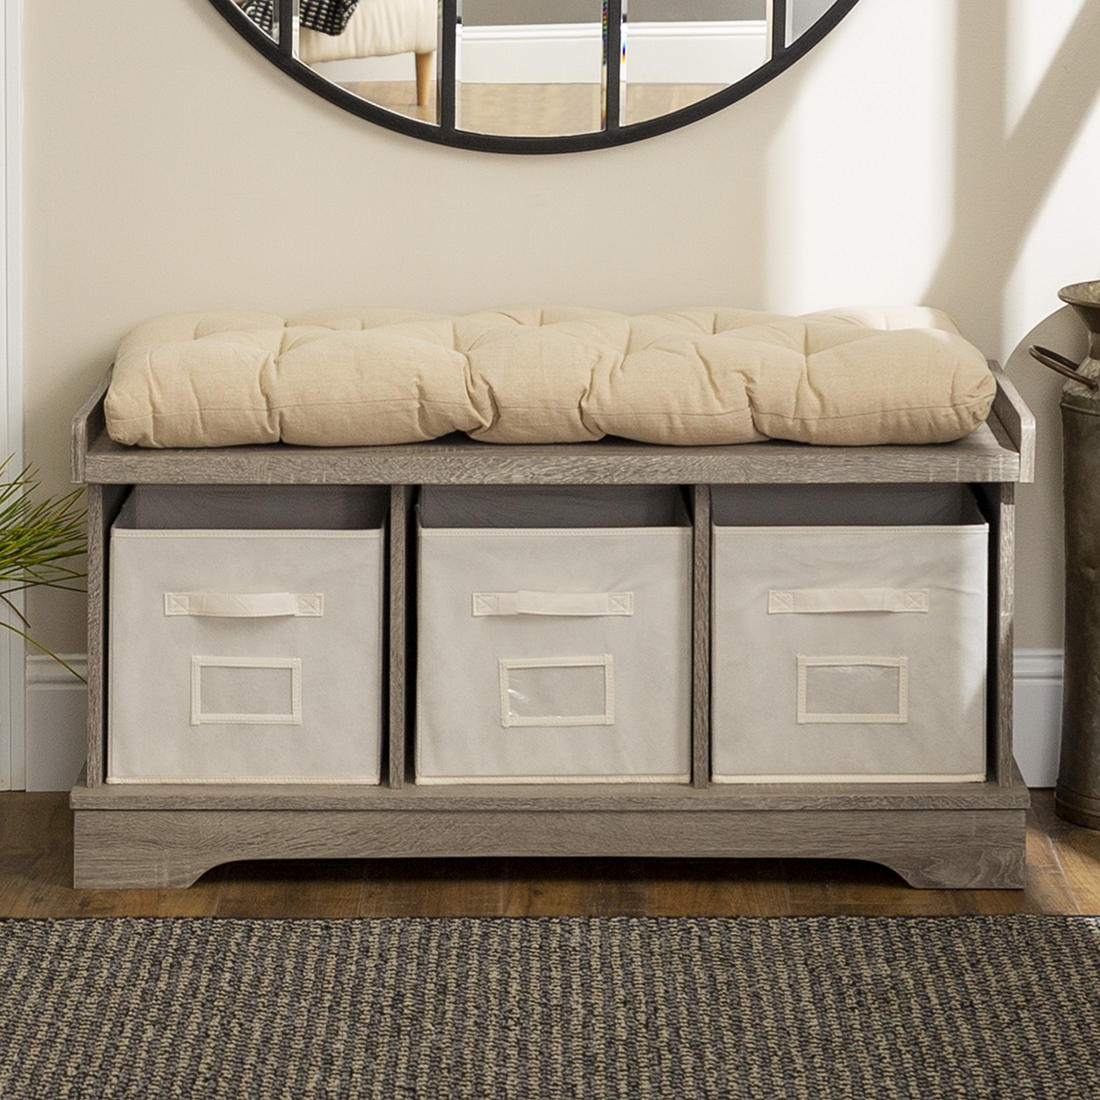 Magnificent 42 Farmhouse Entryway Storage Bench Driftwood Creativecarmelina Interior Chair Design Creativecarmelinacom